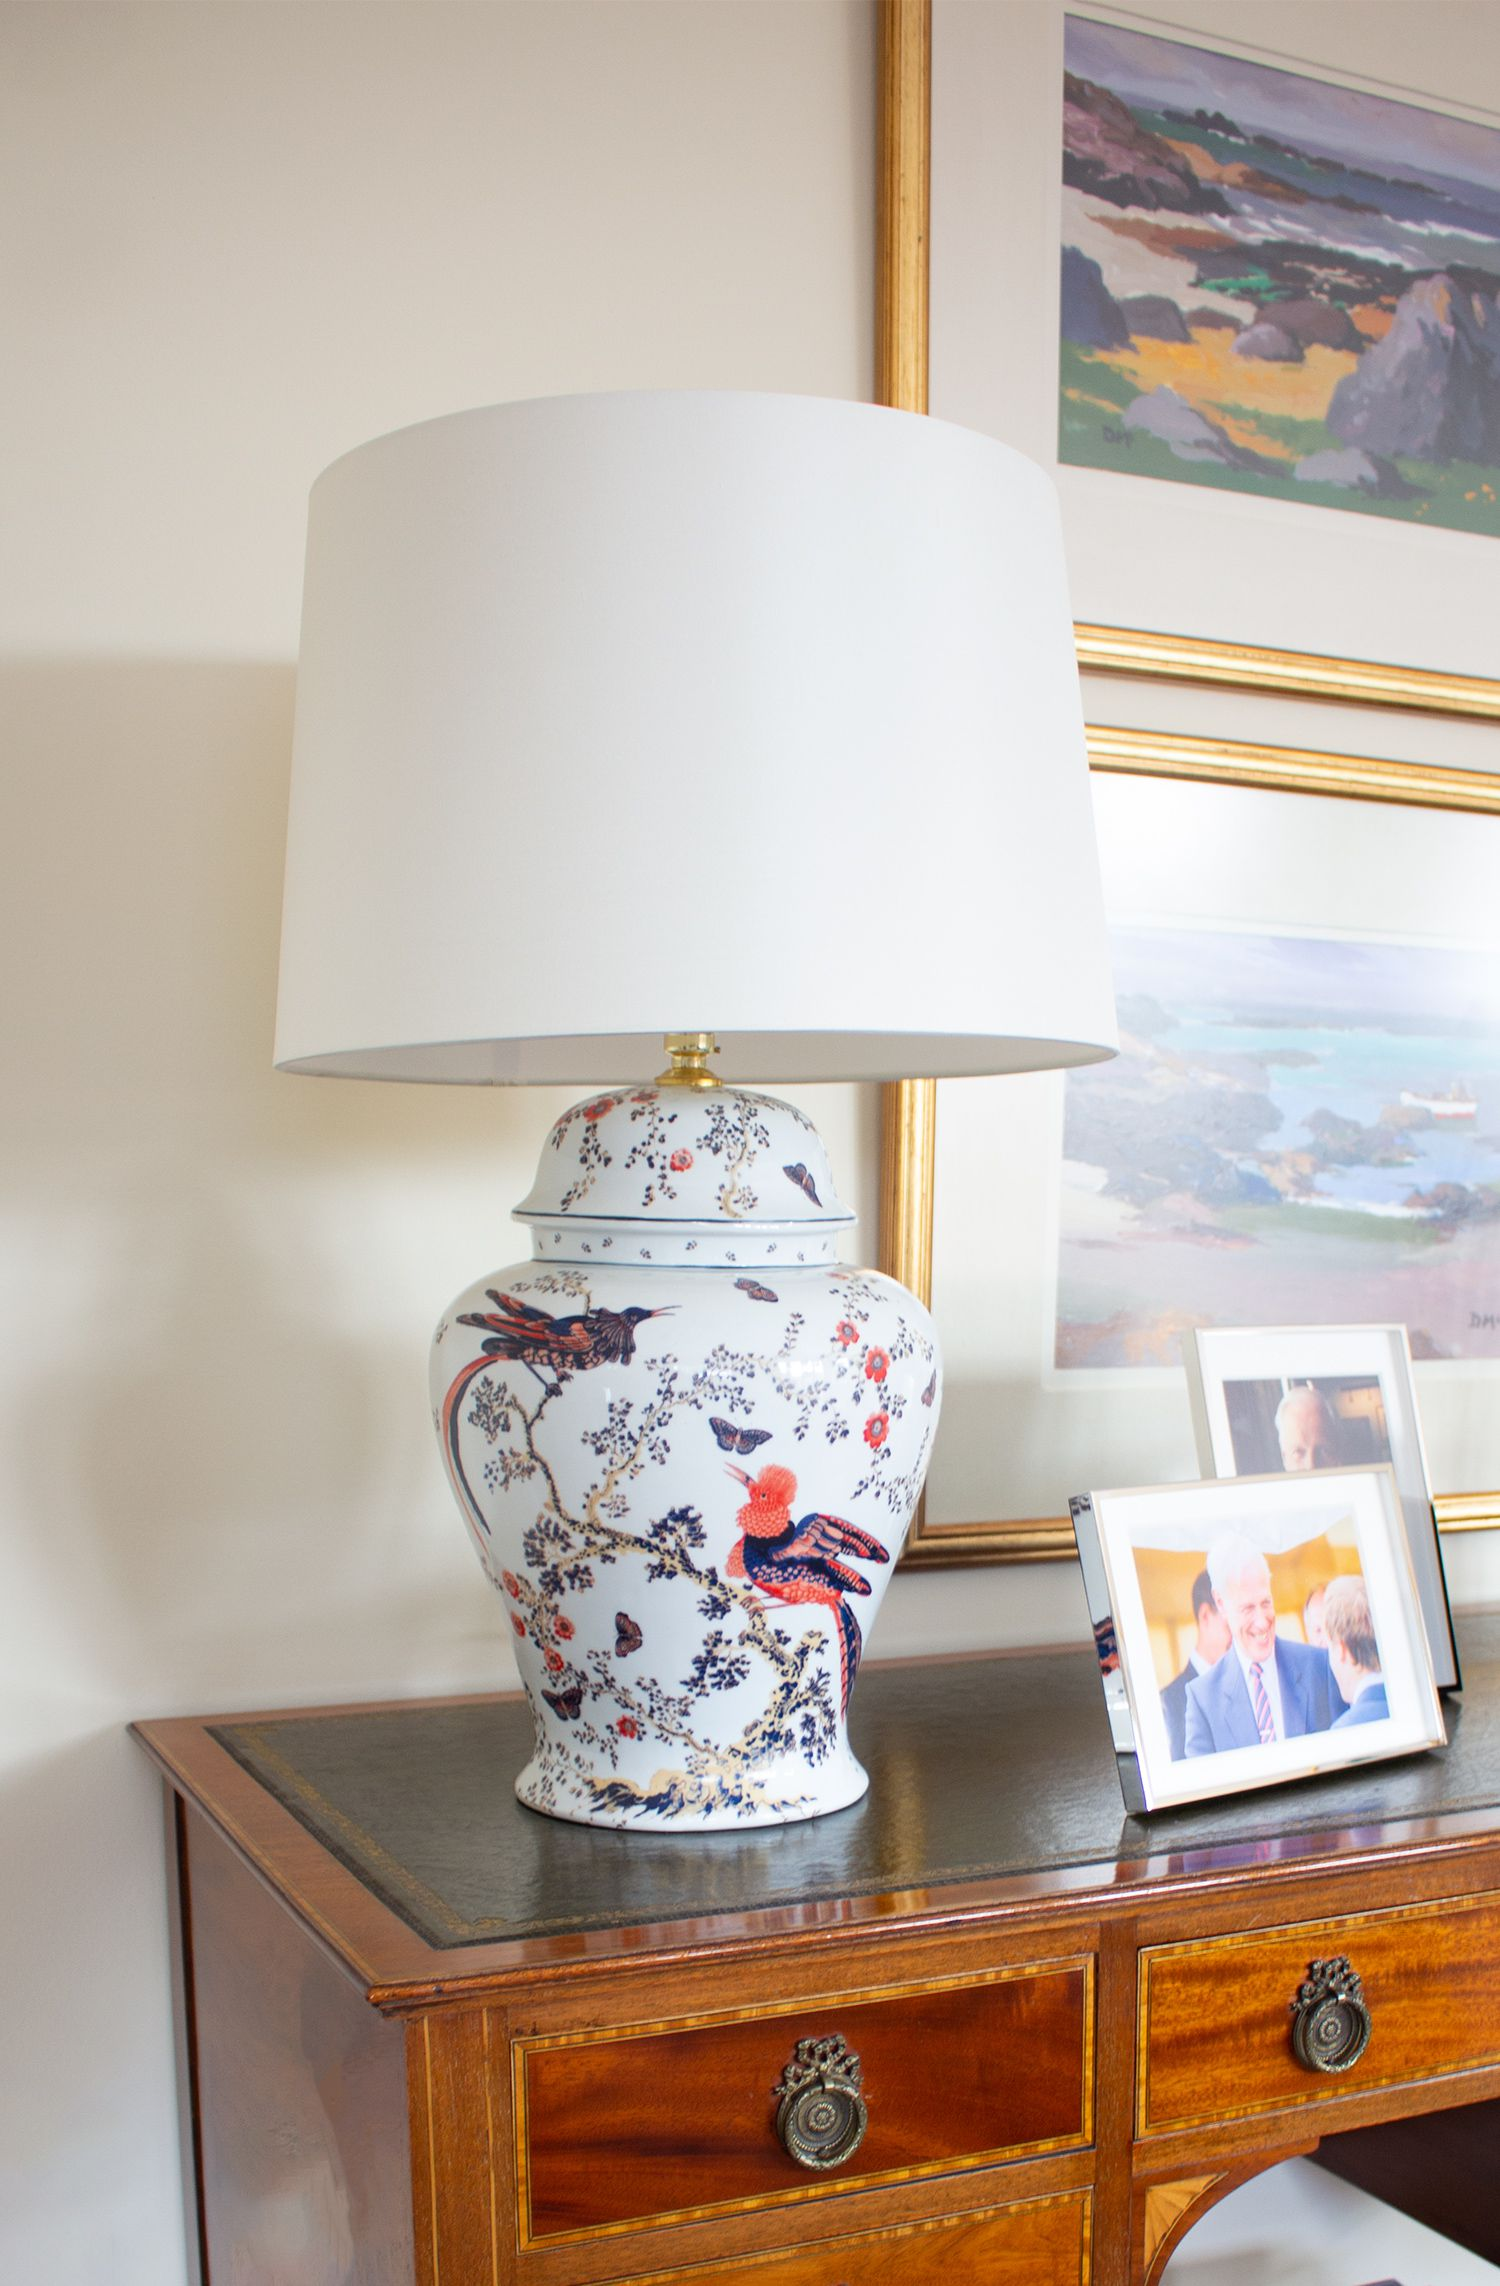 A photo of another hand painted lamp on an antique desk.